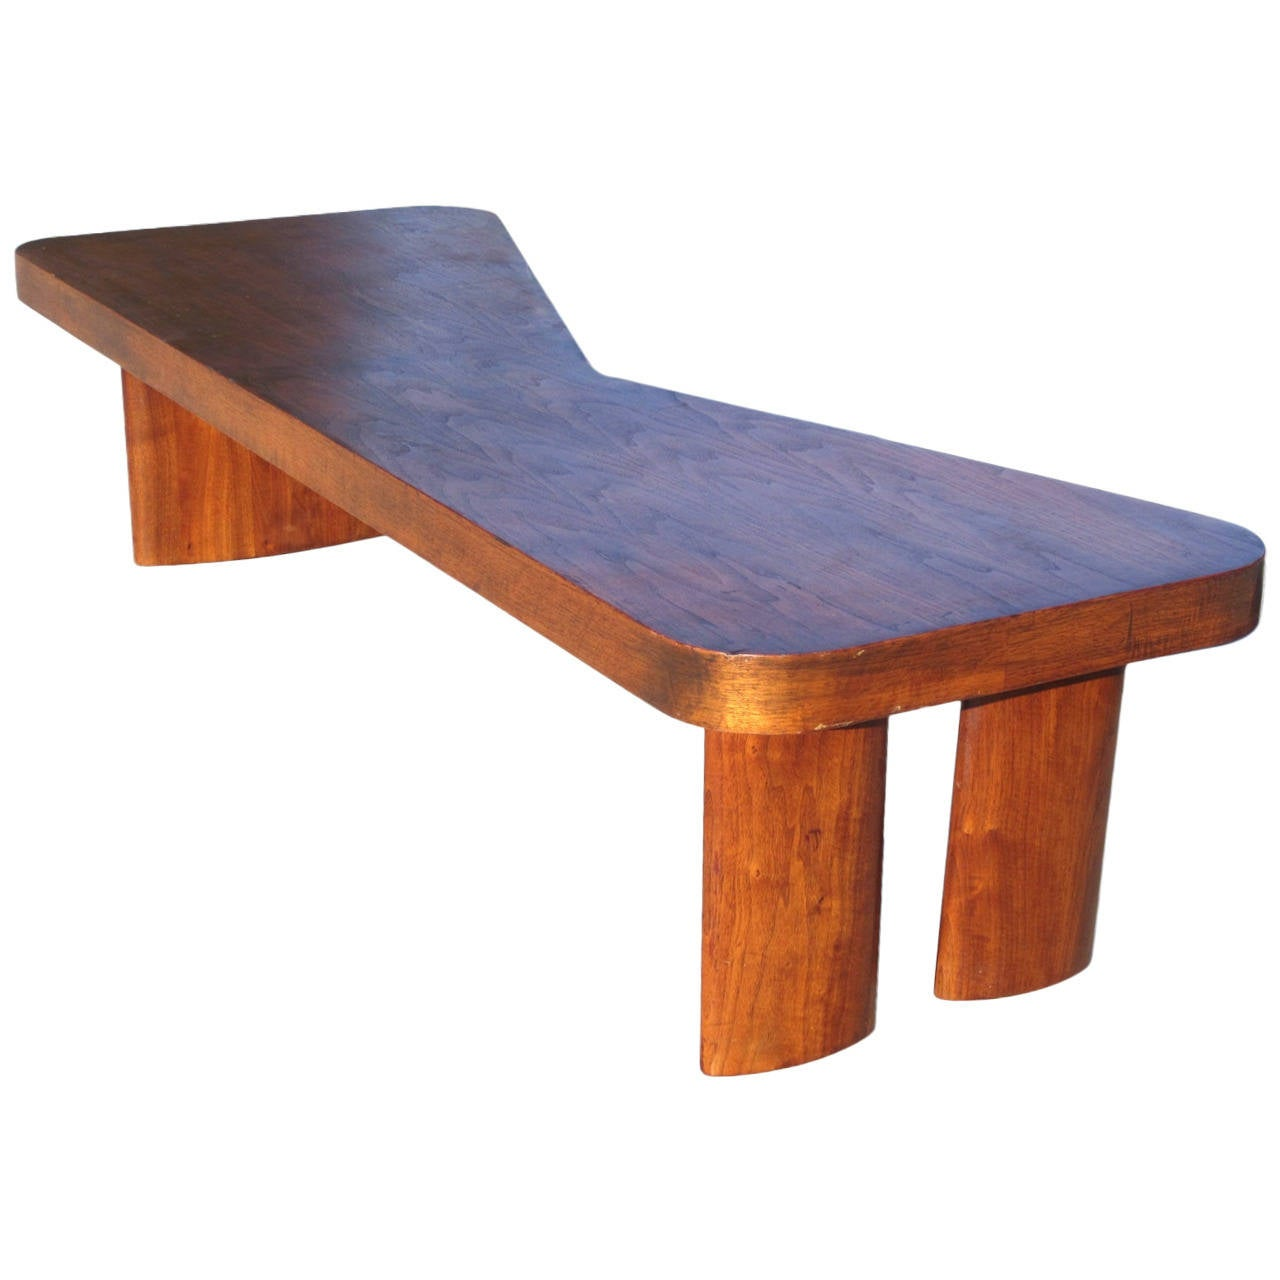 1950s Mid-Century Modern Biomorphic-Top Coffee Table With